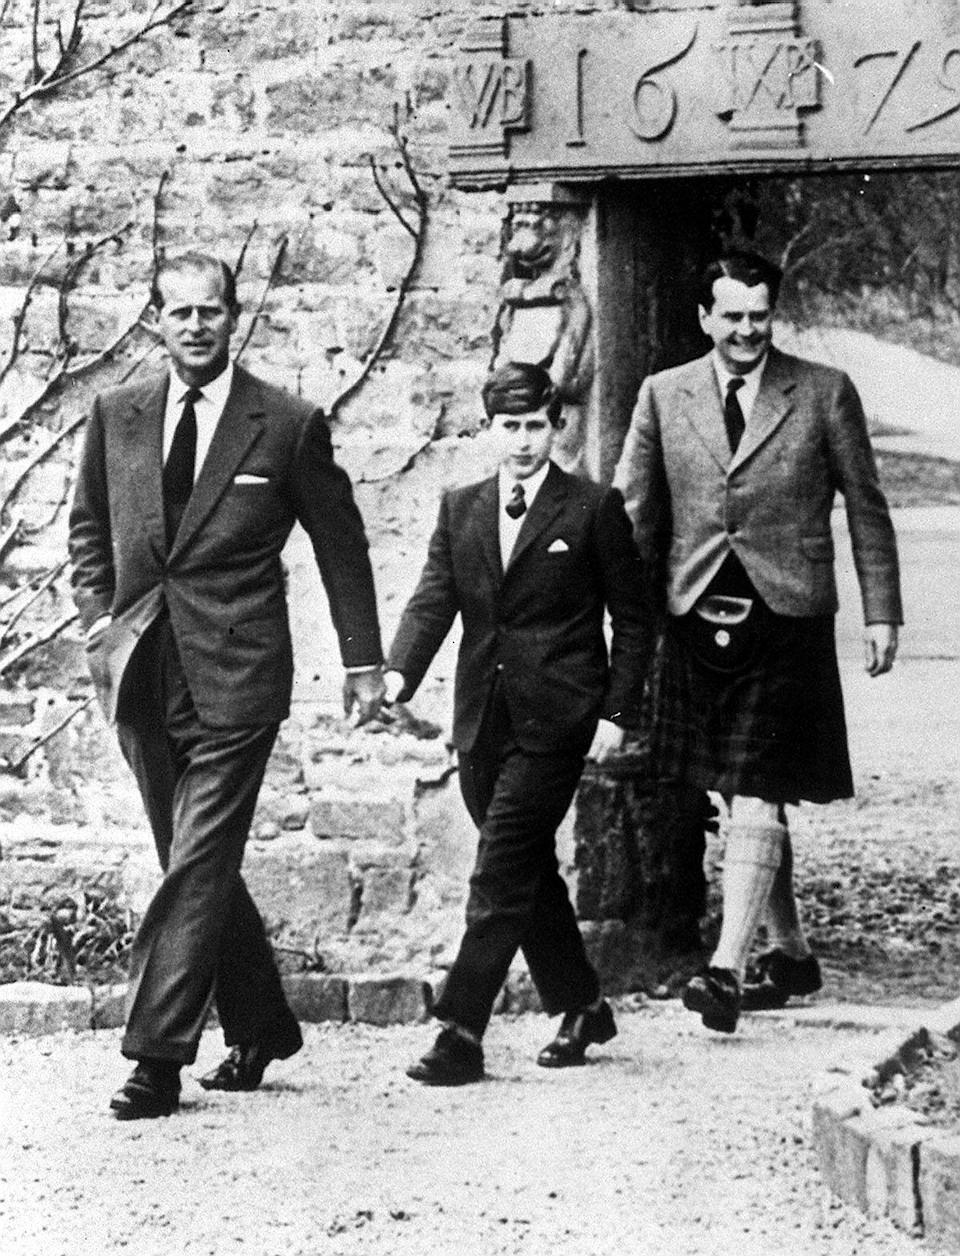 The Prince of Wales, with his father the Duke of Edinburgh (left) and Captain Iain Tennant, Chairman of the Gordonstoun Board of Governors, arriving at Gordonstoun for the Prince's first day at Pulic School.   (Photo by PA Images via Getty Images)